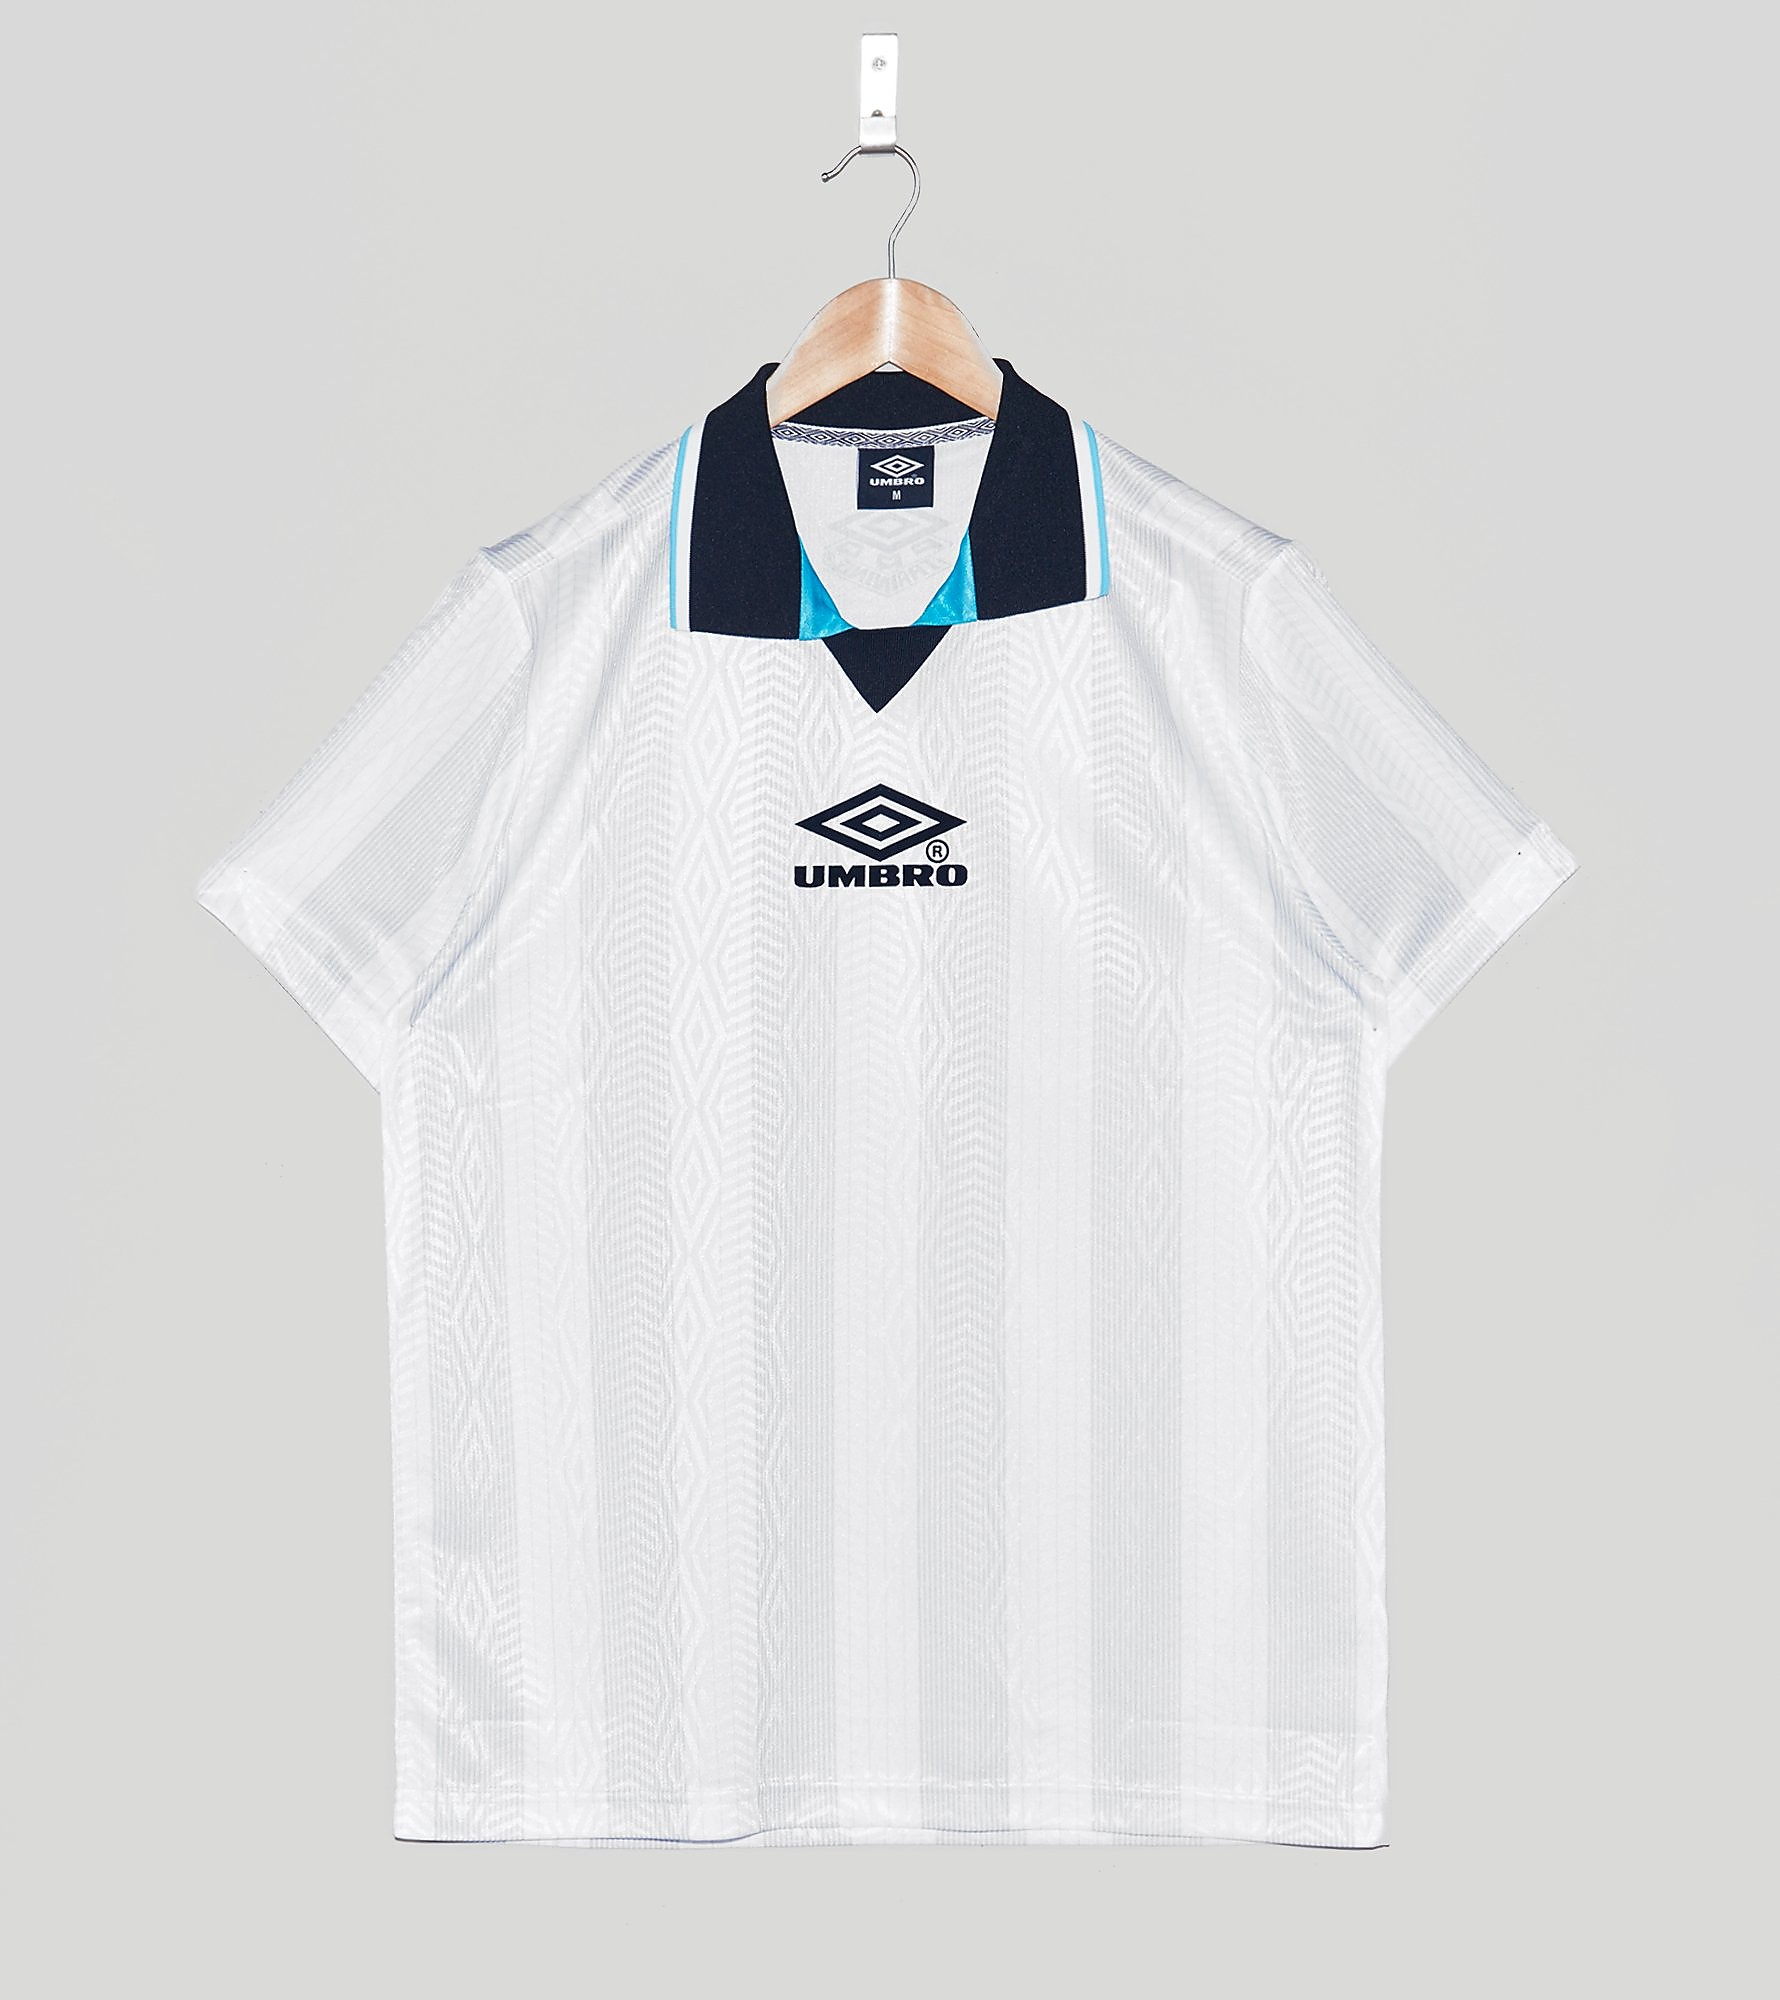 Umbro E96 Tour Top